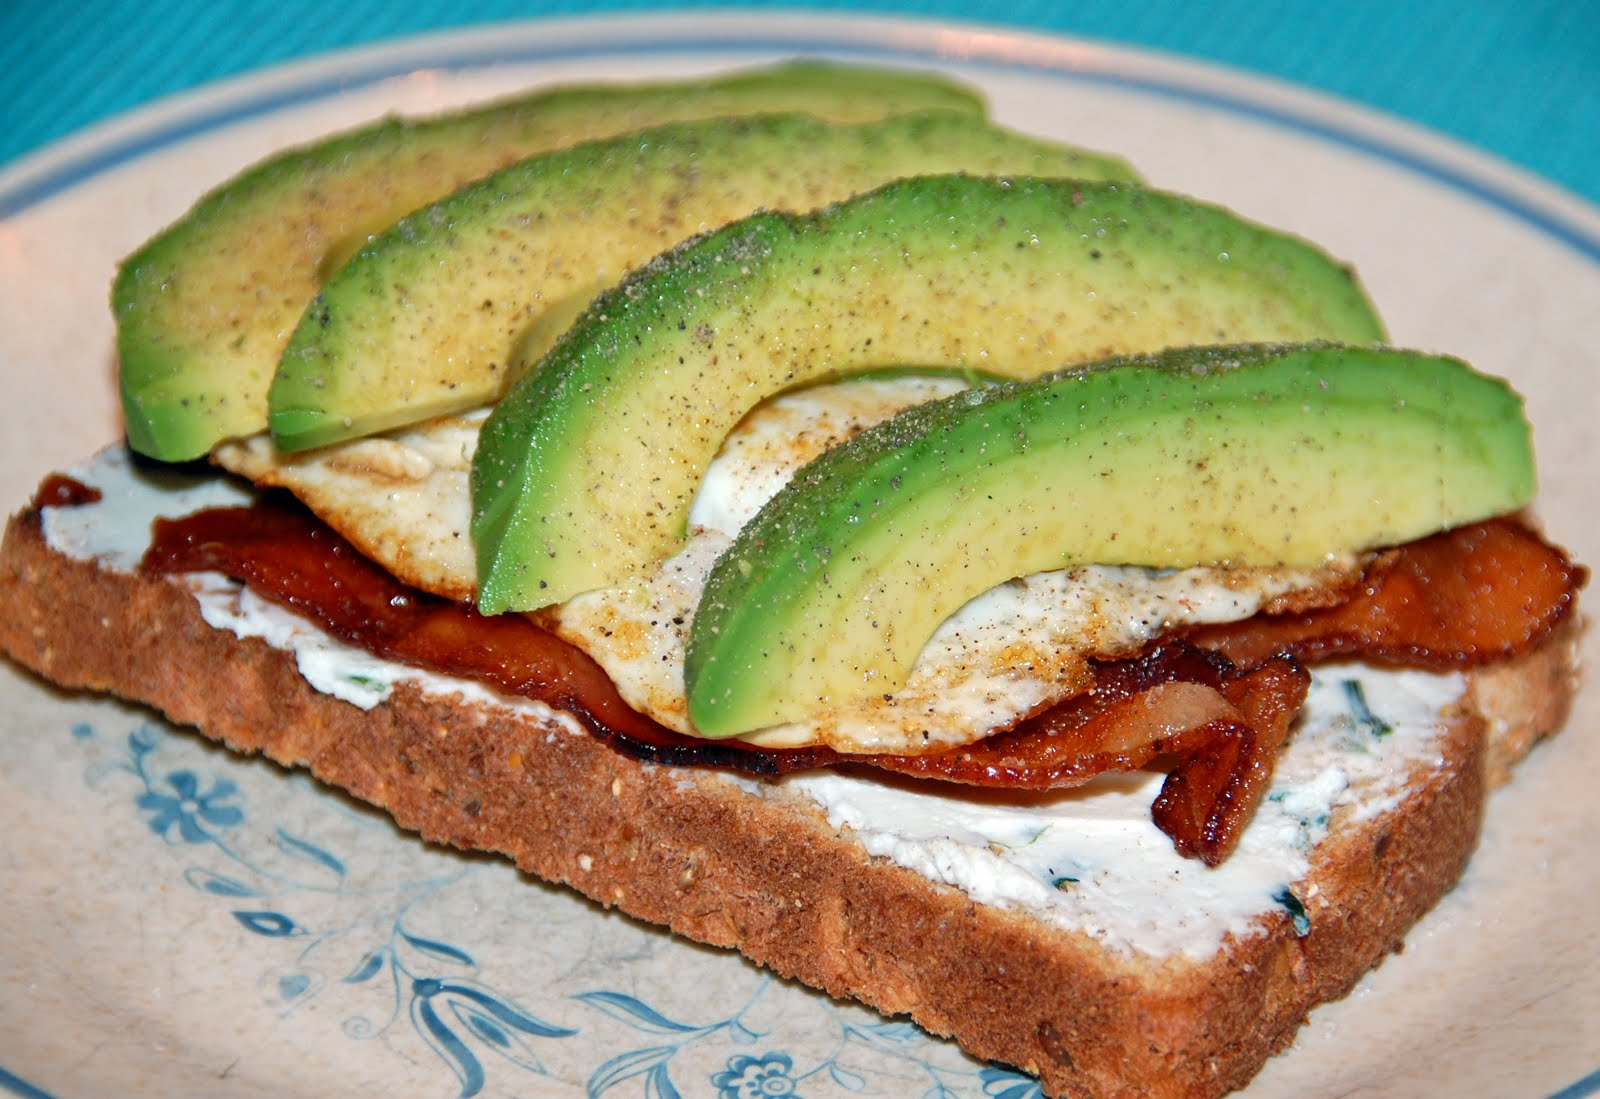 Southern Lady's Recipes: Fried Egg, Bacon and Avocado Sandwich